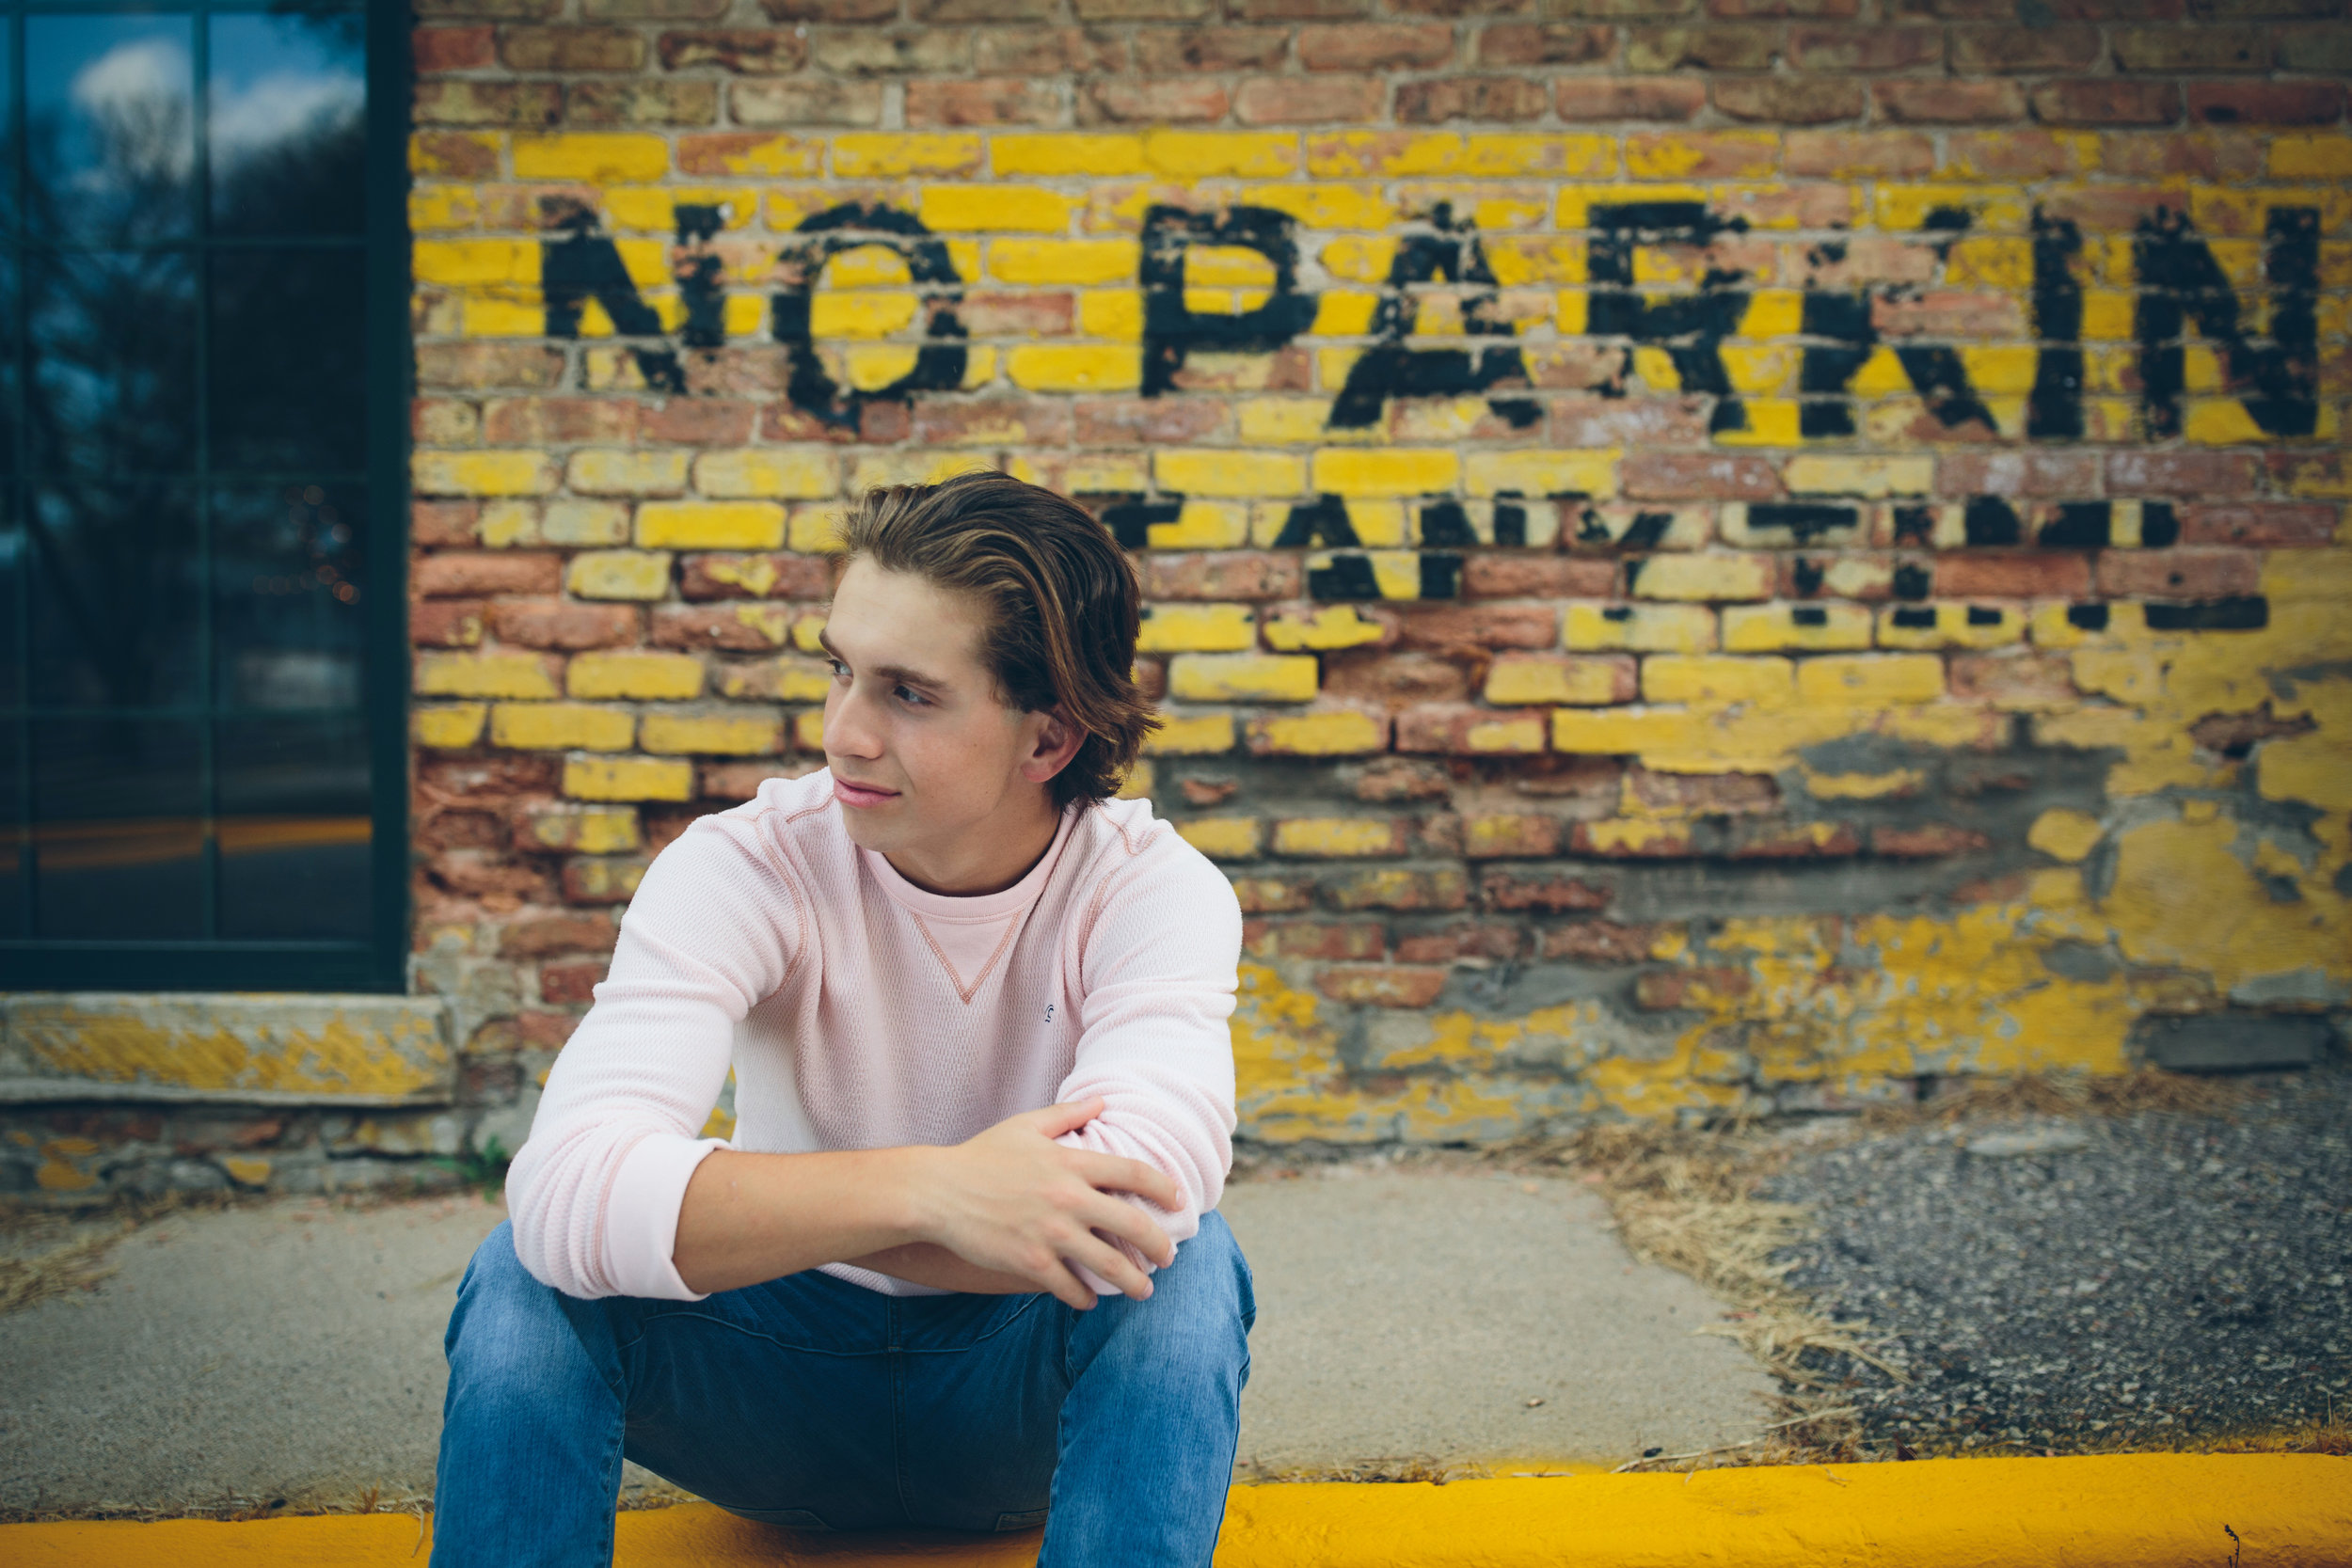 Boy senior photo in front of brick no parking sign. Baraboo, WI.